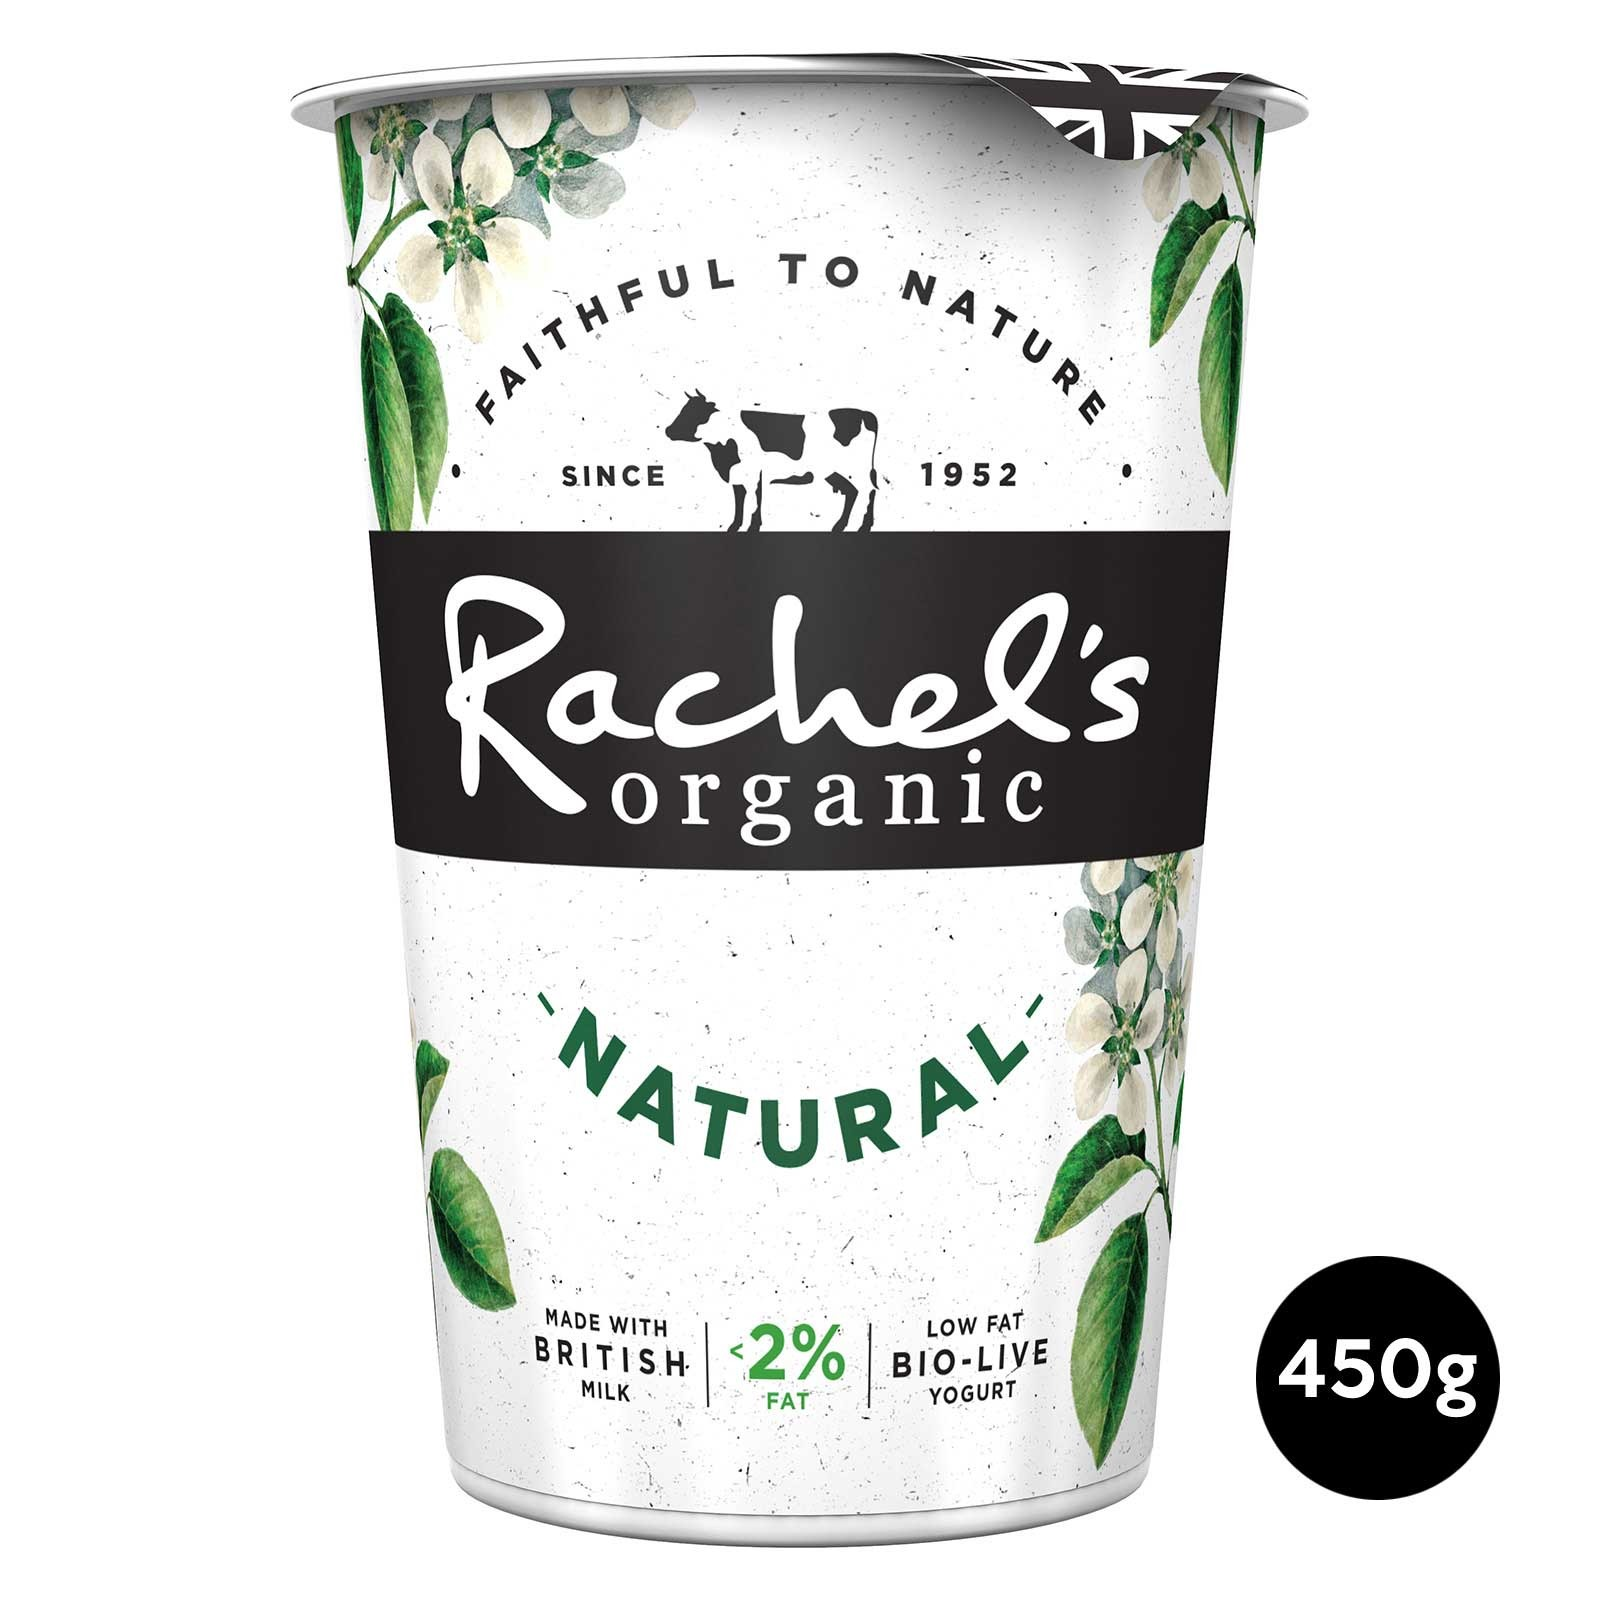 Rachel's Organic Low Fat Natural Bio-Live Yoghurt